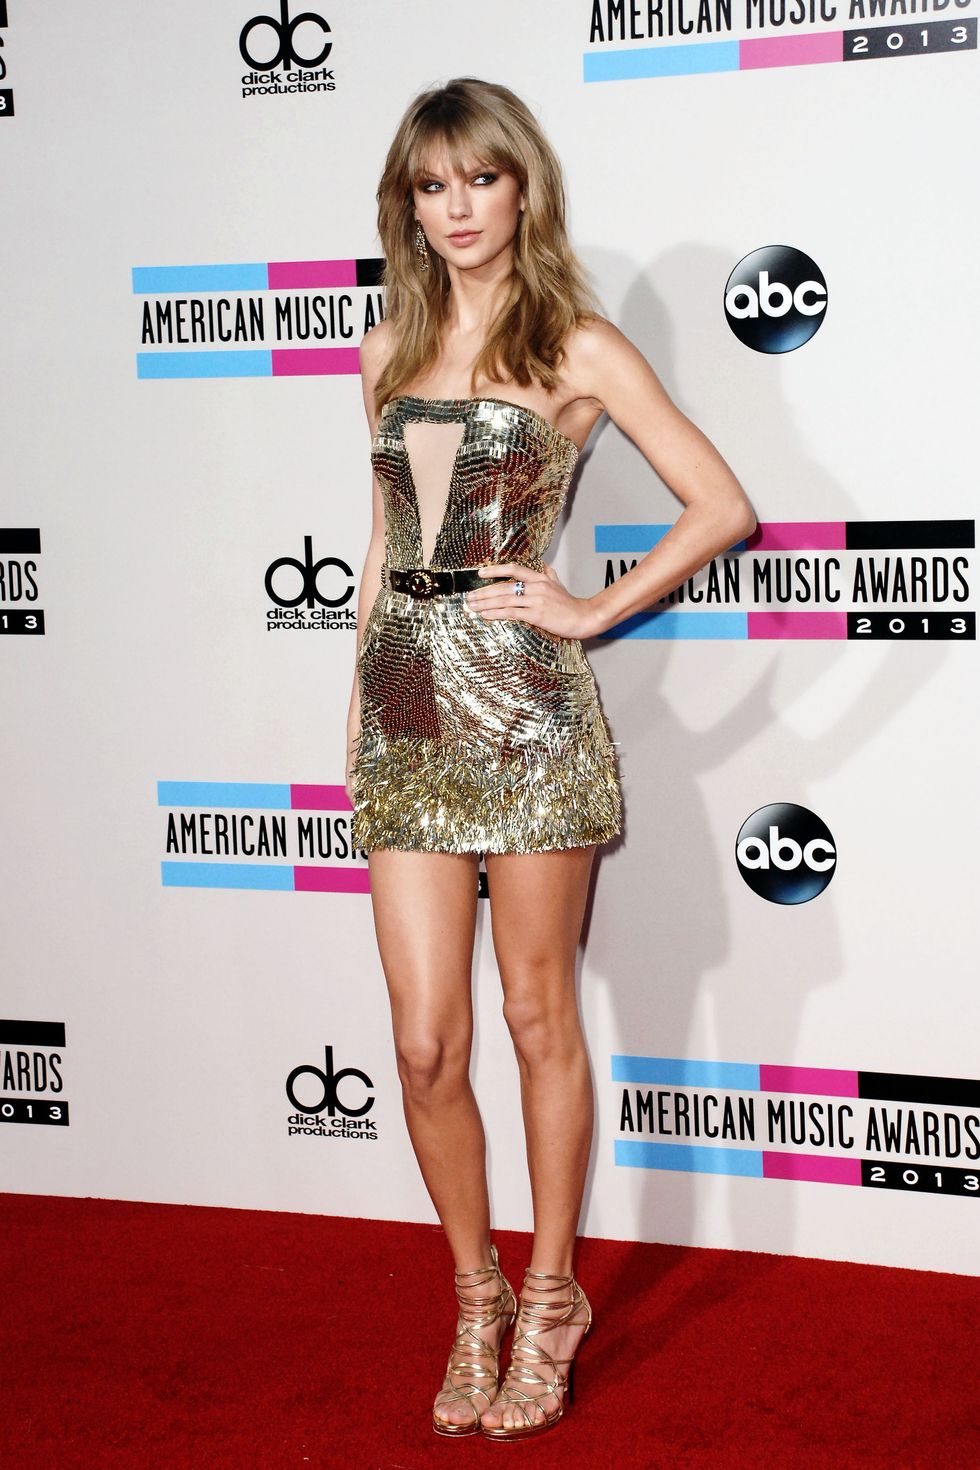 Rating the Fashion at the 2013 American Music Awards